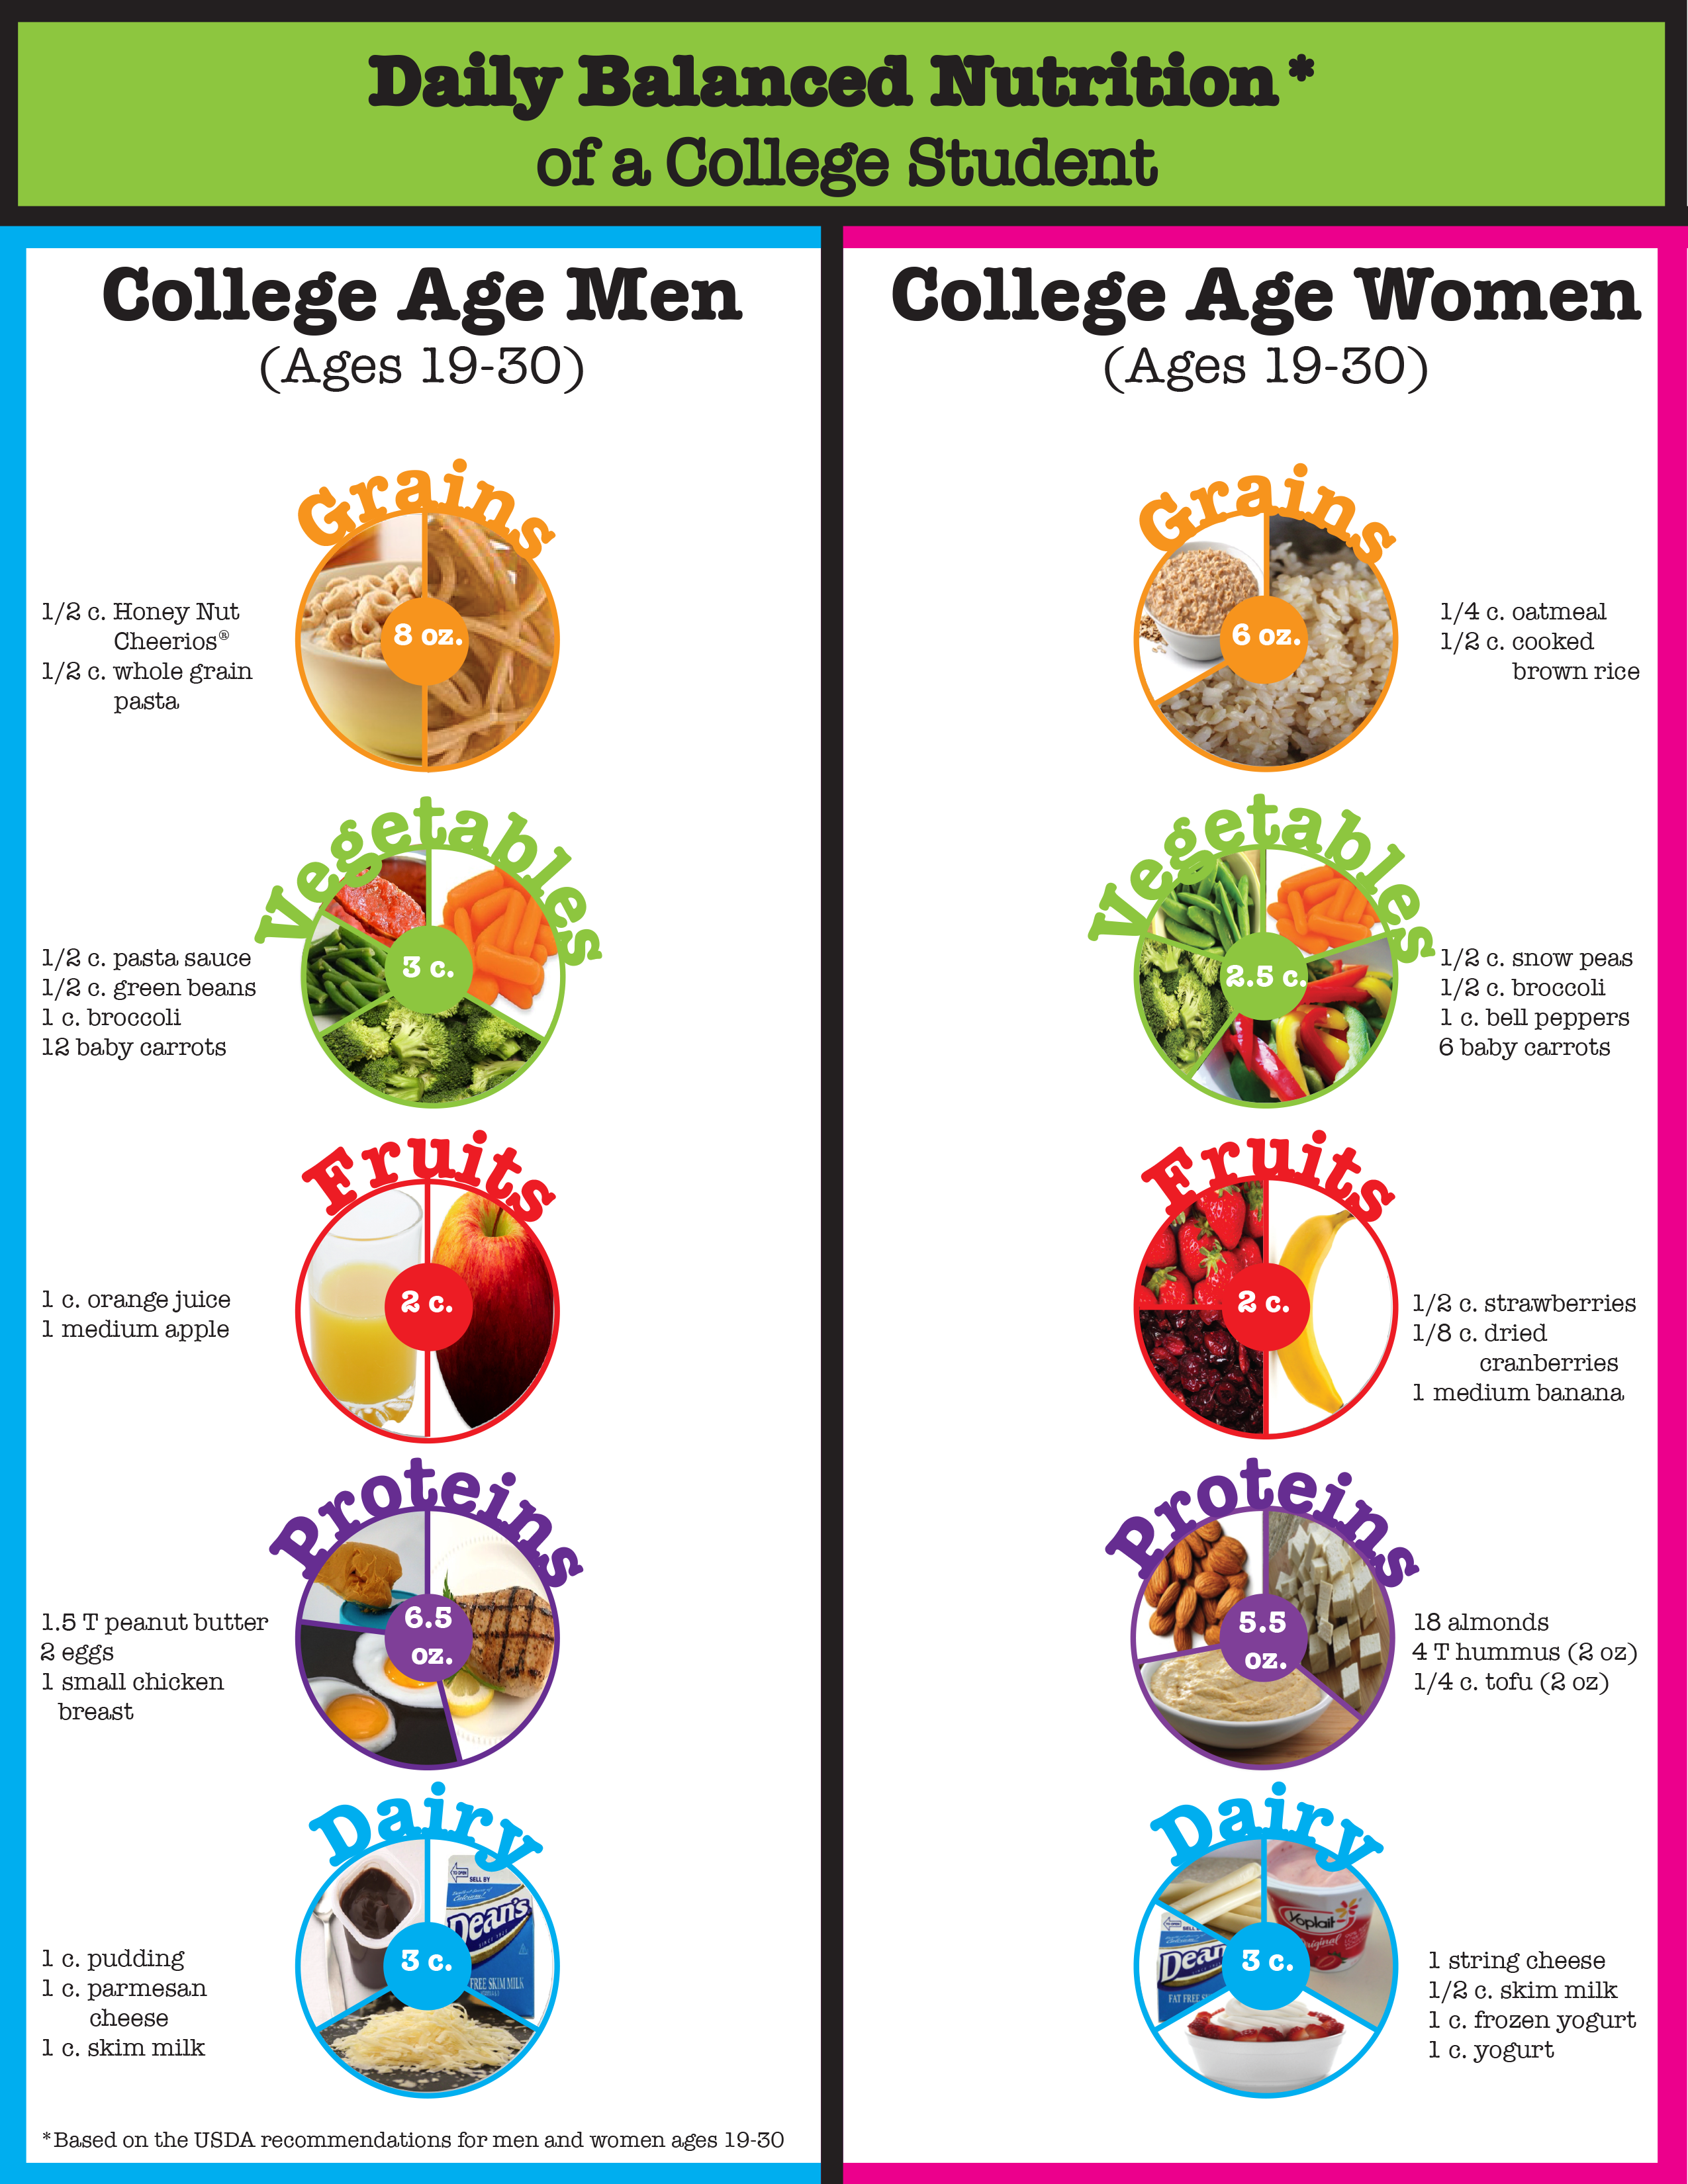 Daily Balanced Nutrition of a College Student - an infographic by Katie Schmudlach and Alexis Rubenstein